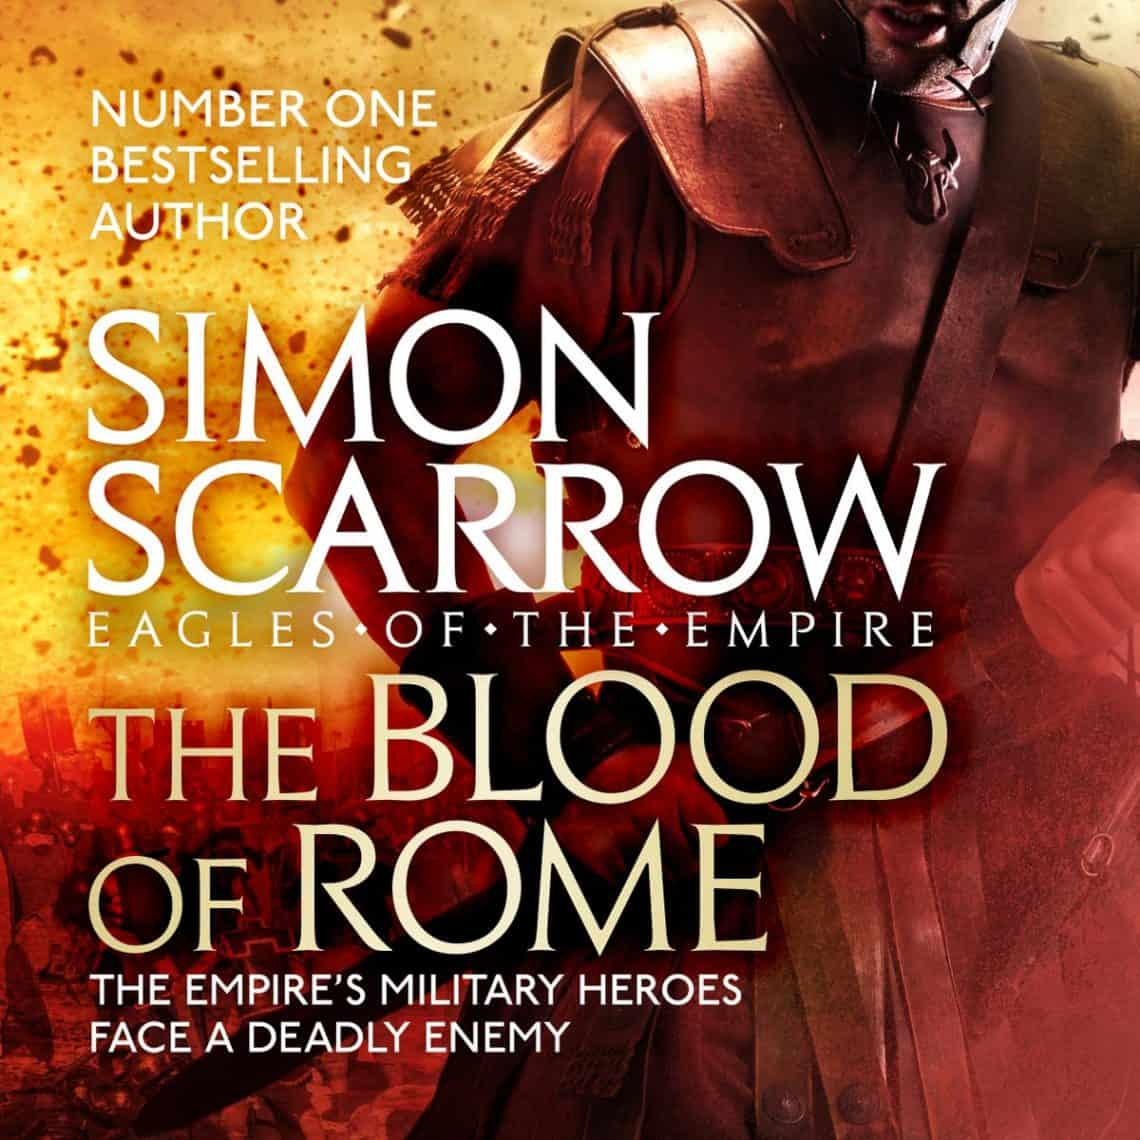 The Blood of Rome Audiobook Free Download